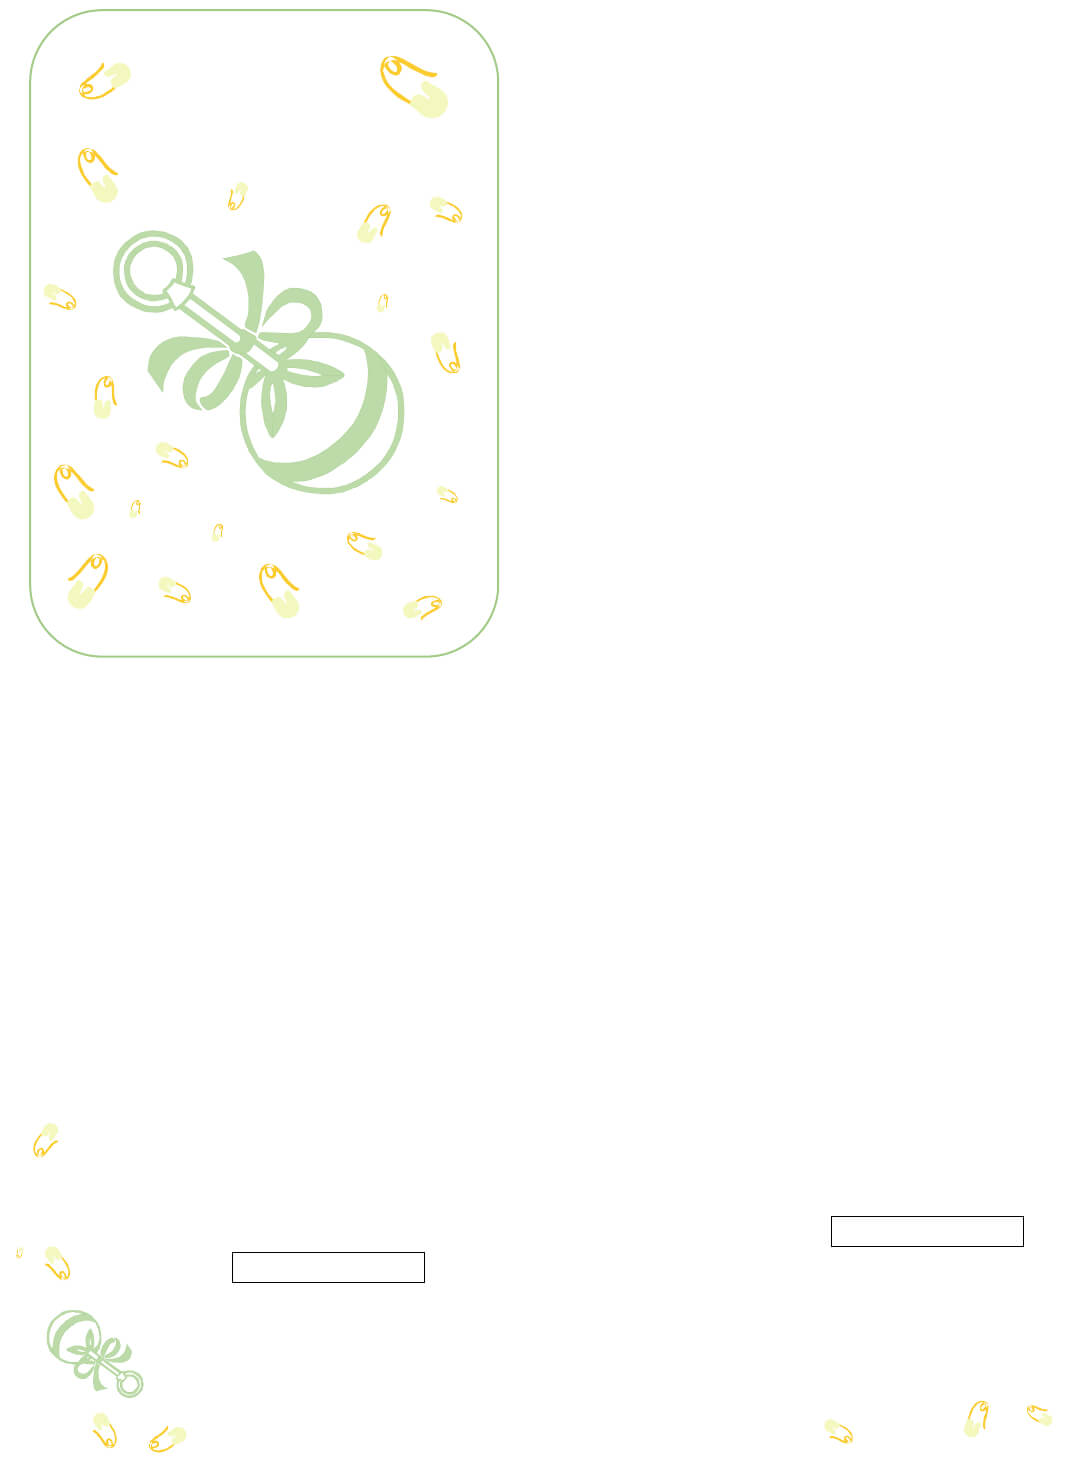 Baby Shower Invitations Templates - The Grid System regarding Free Baby Shower Invitation Templates Microsoft Word